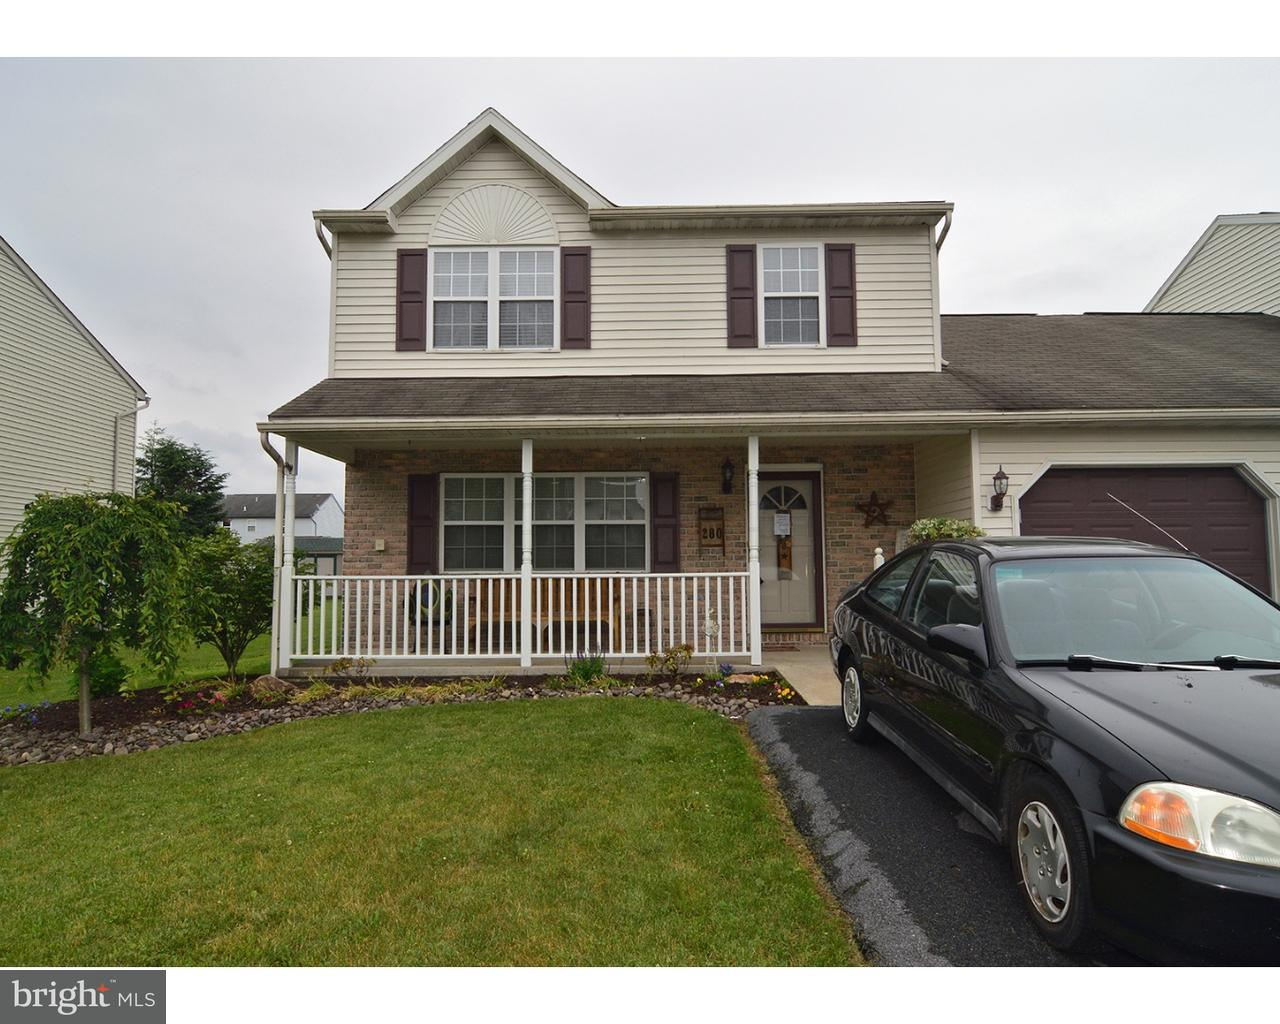 280 N VIEW RD, FLEETWOOD - Listed at $180,000, FLEETWOOD